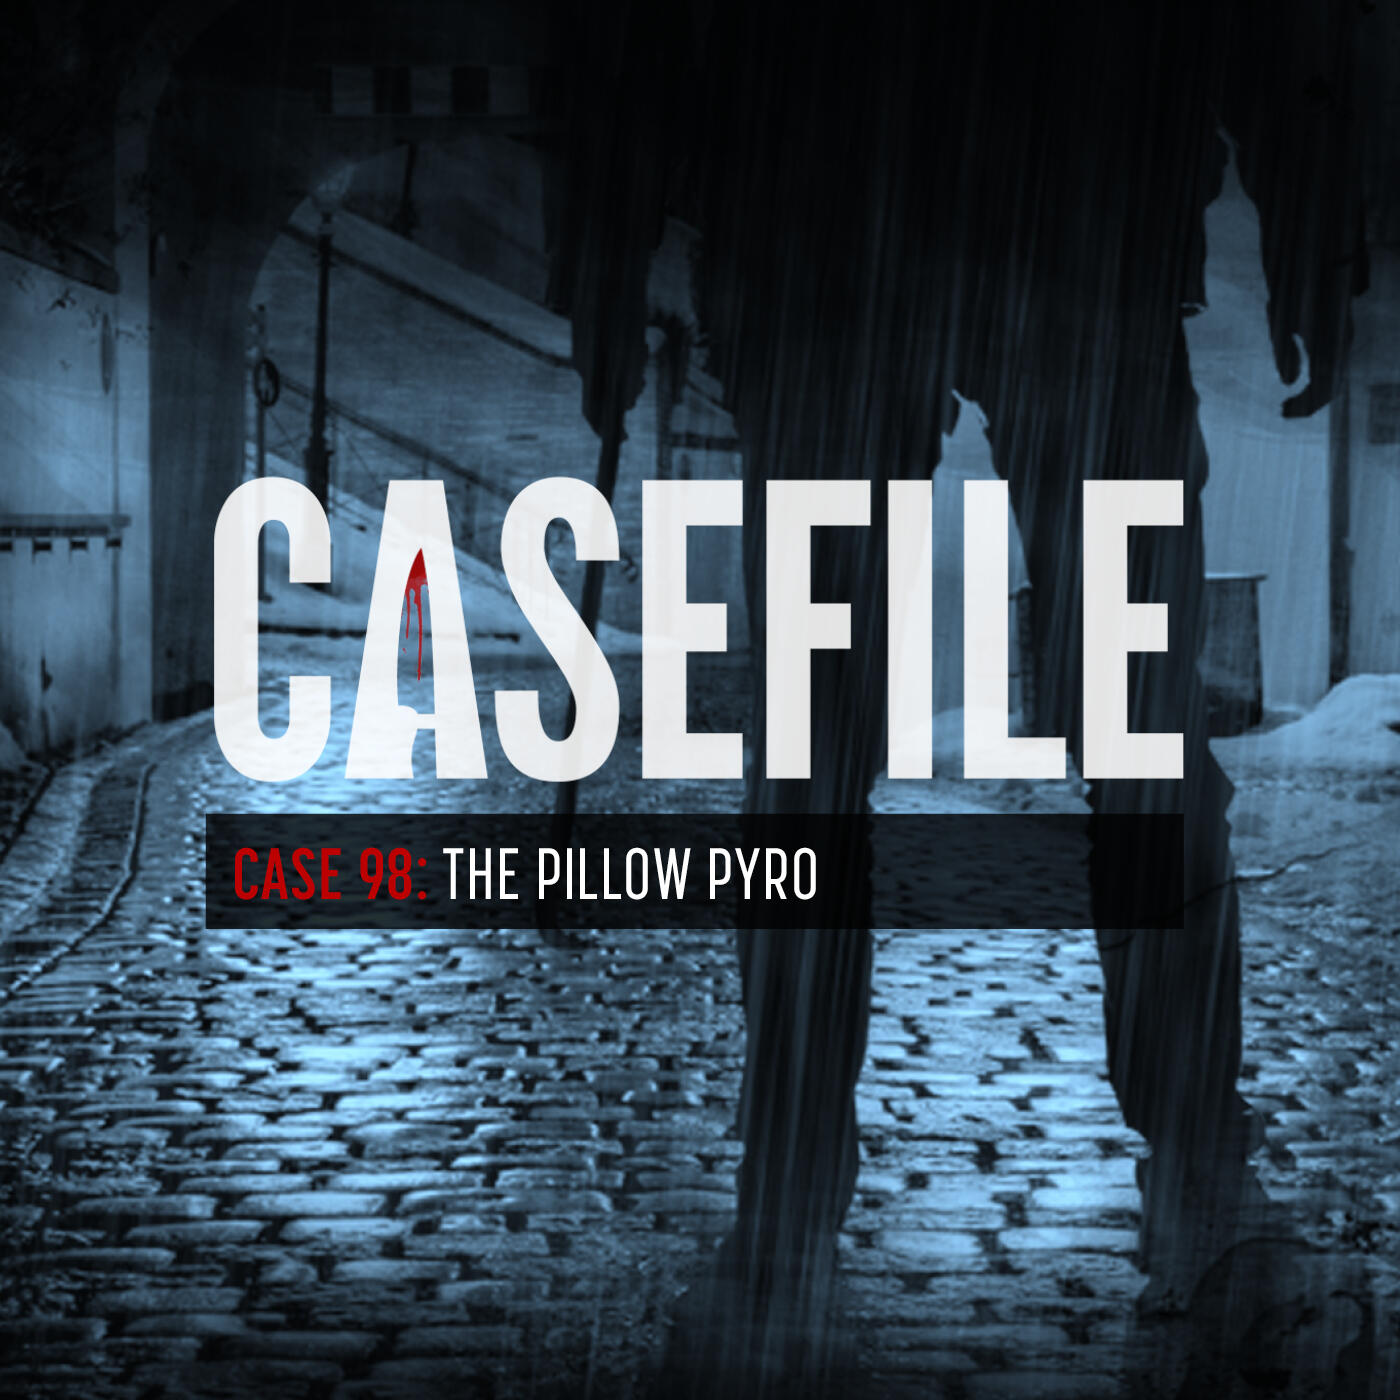 Case 98: The Pillow Pyro